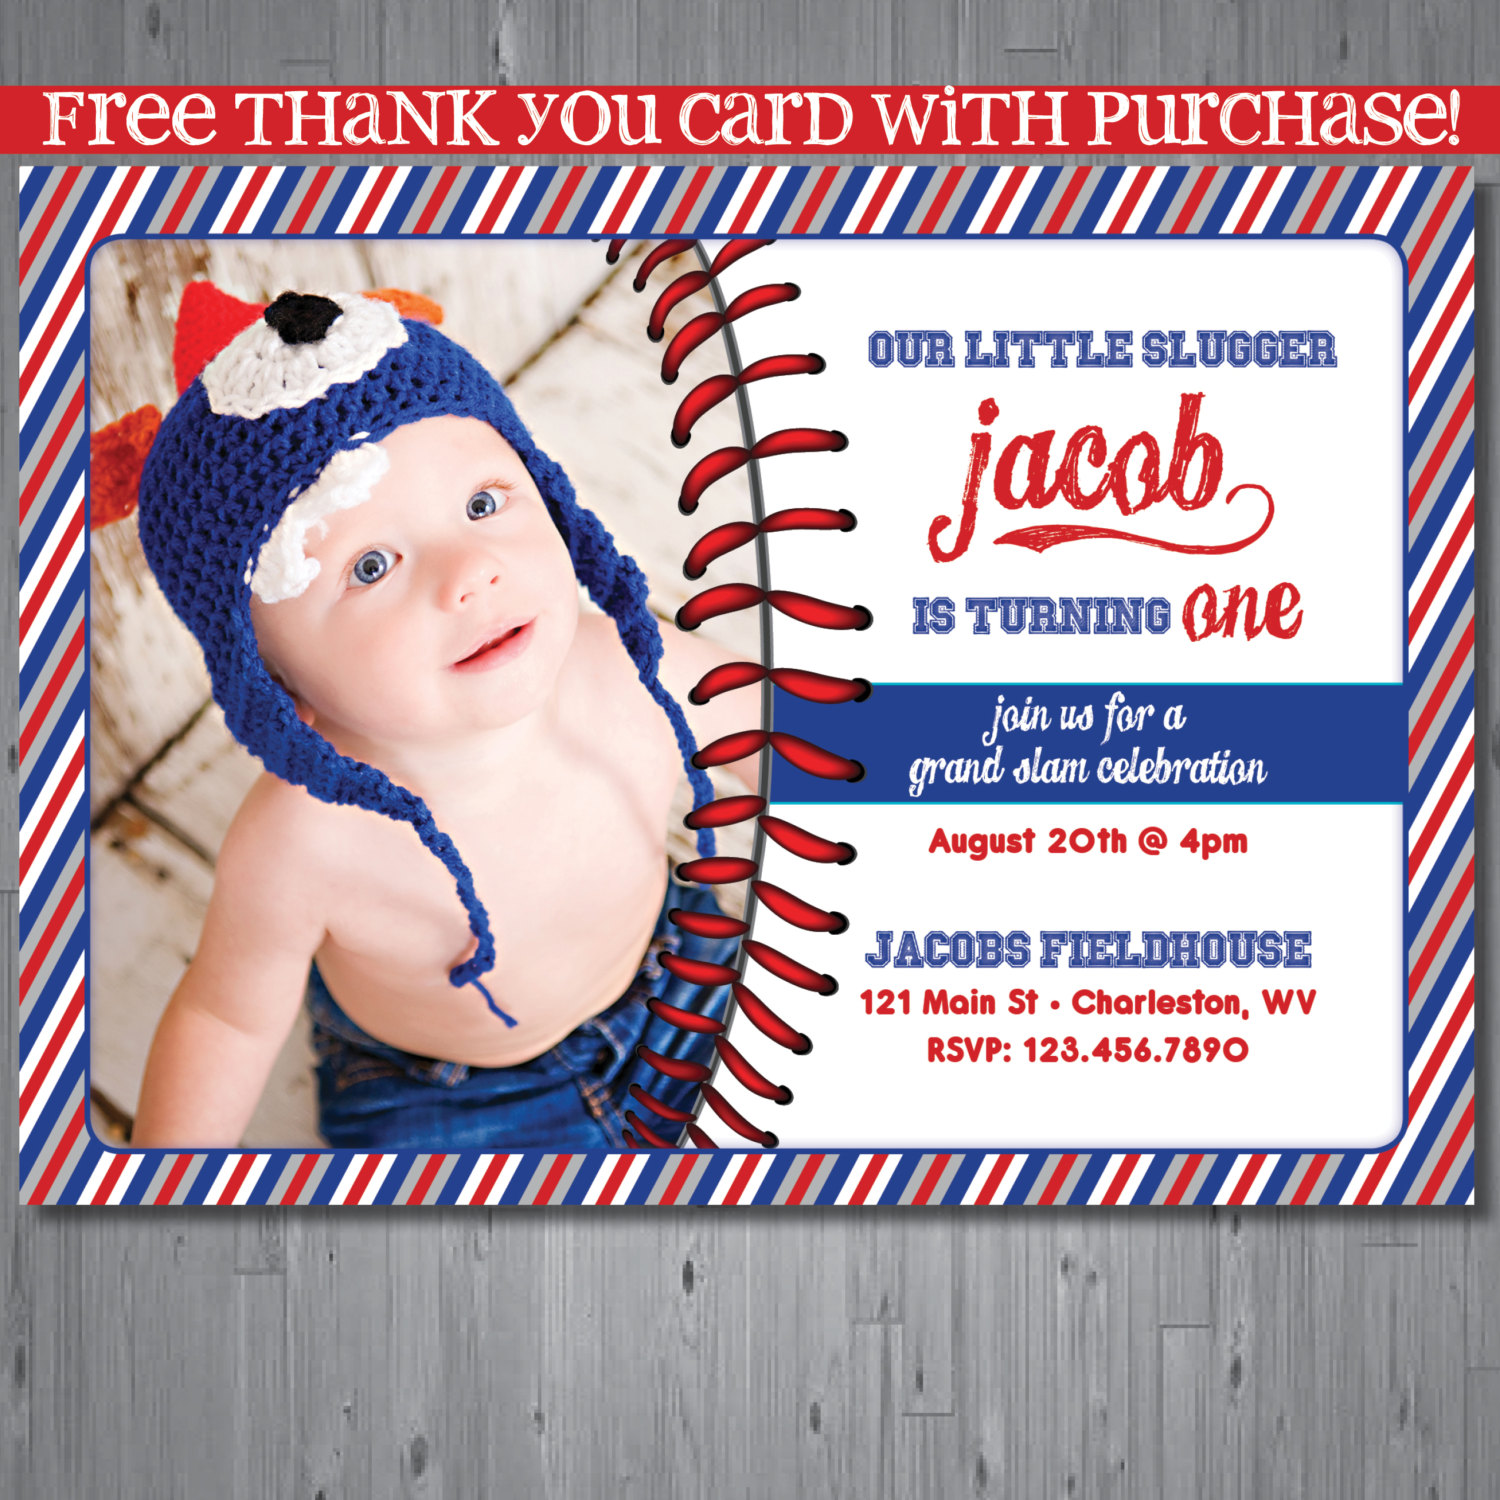 baseball themed birthday party invitation wording ; Baseball-Birthday-Invitation-Wording-for-a-surprising-birthday-Invitation-design-with-surprising-layout-8